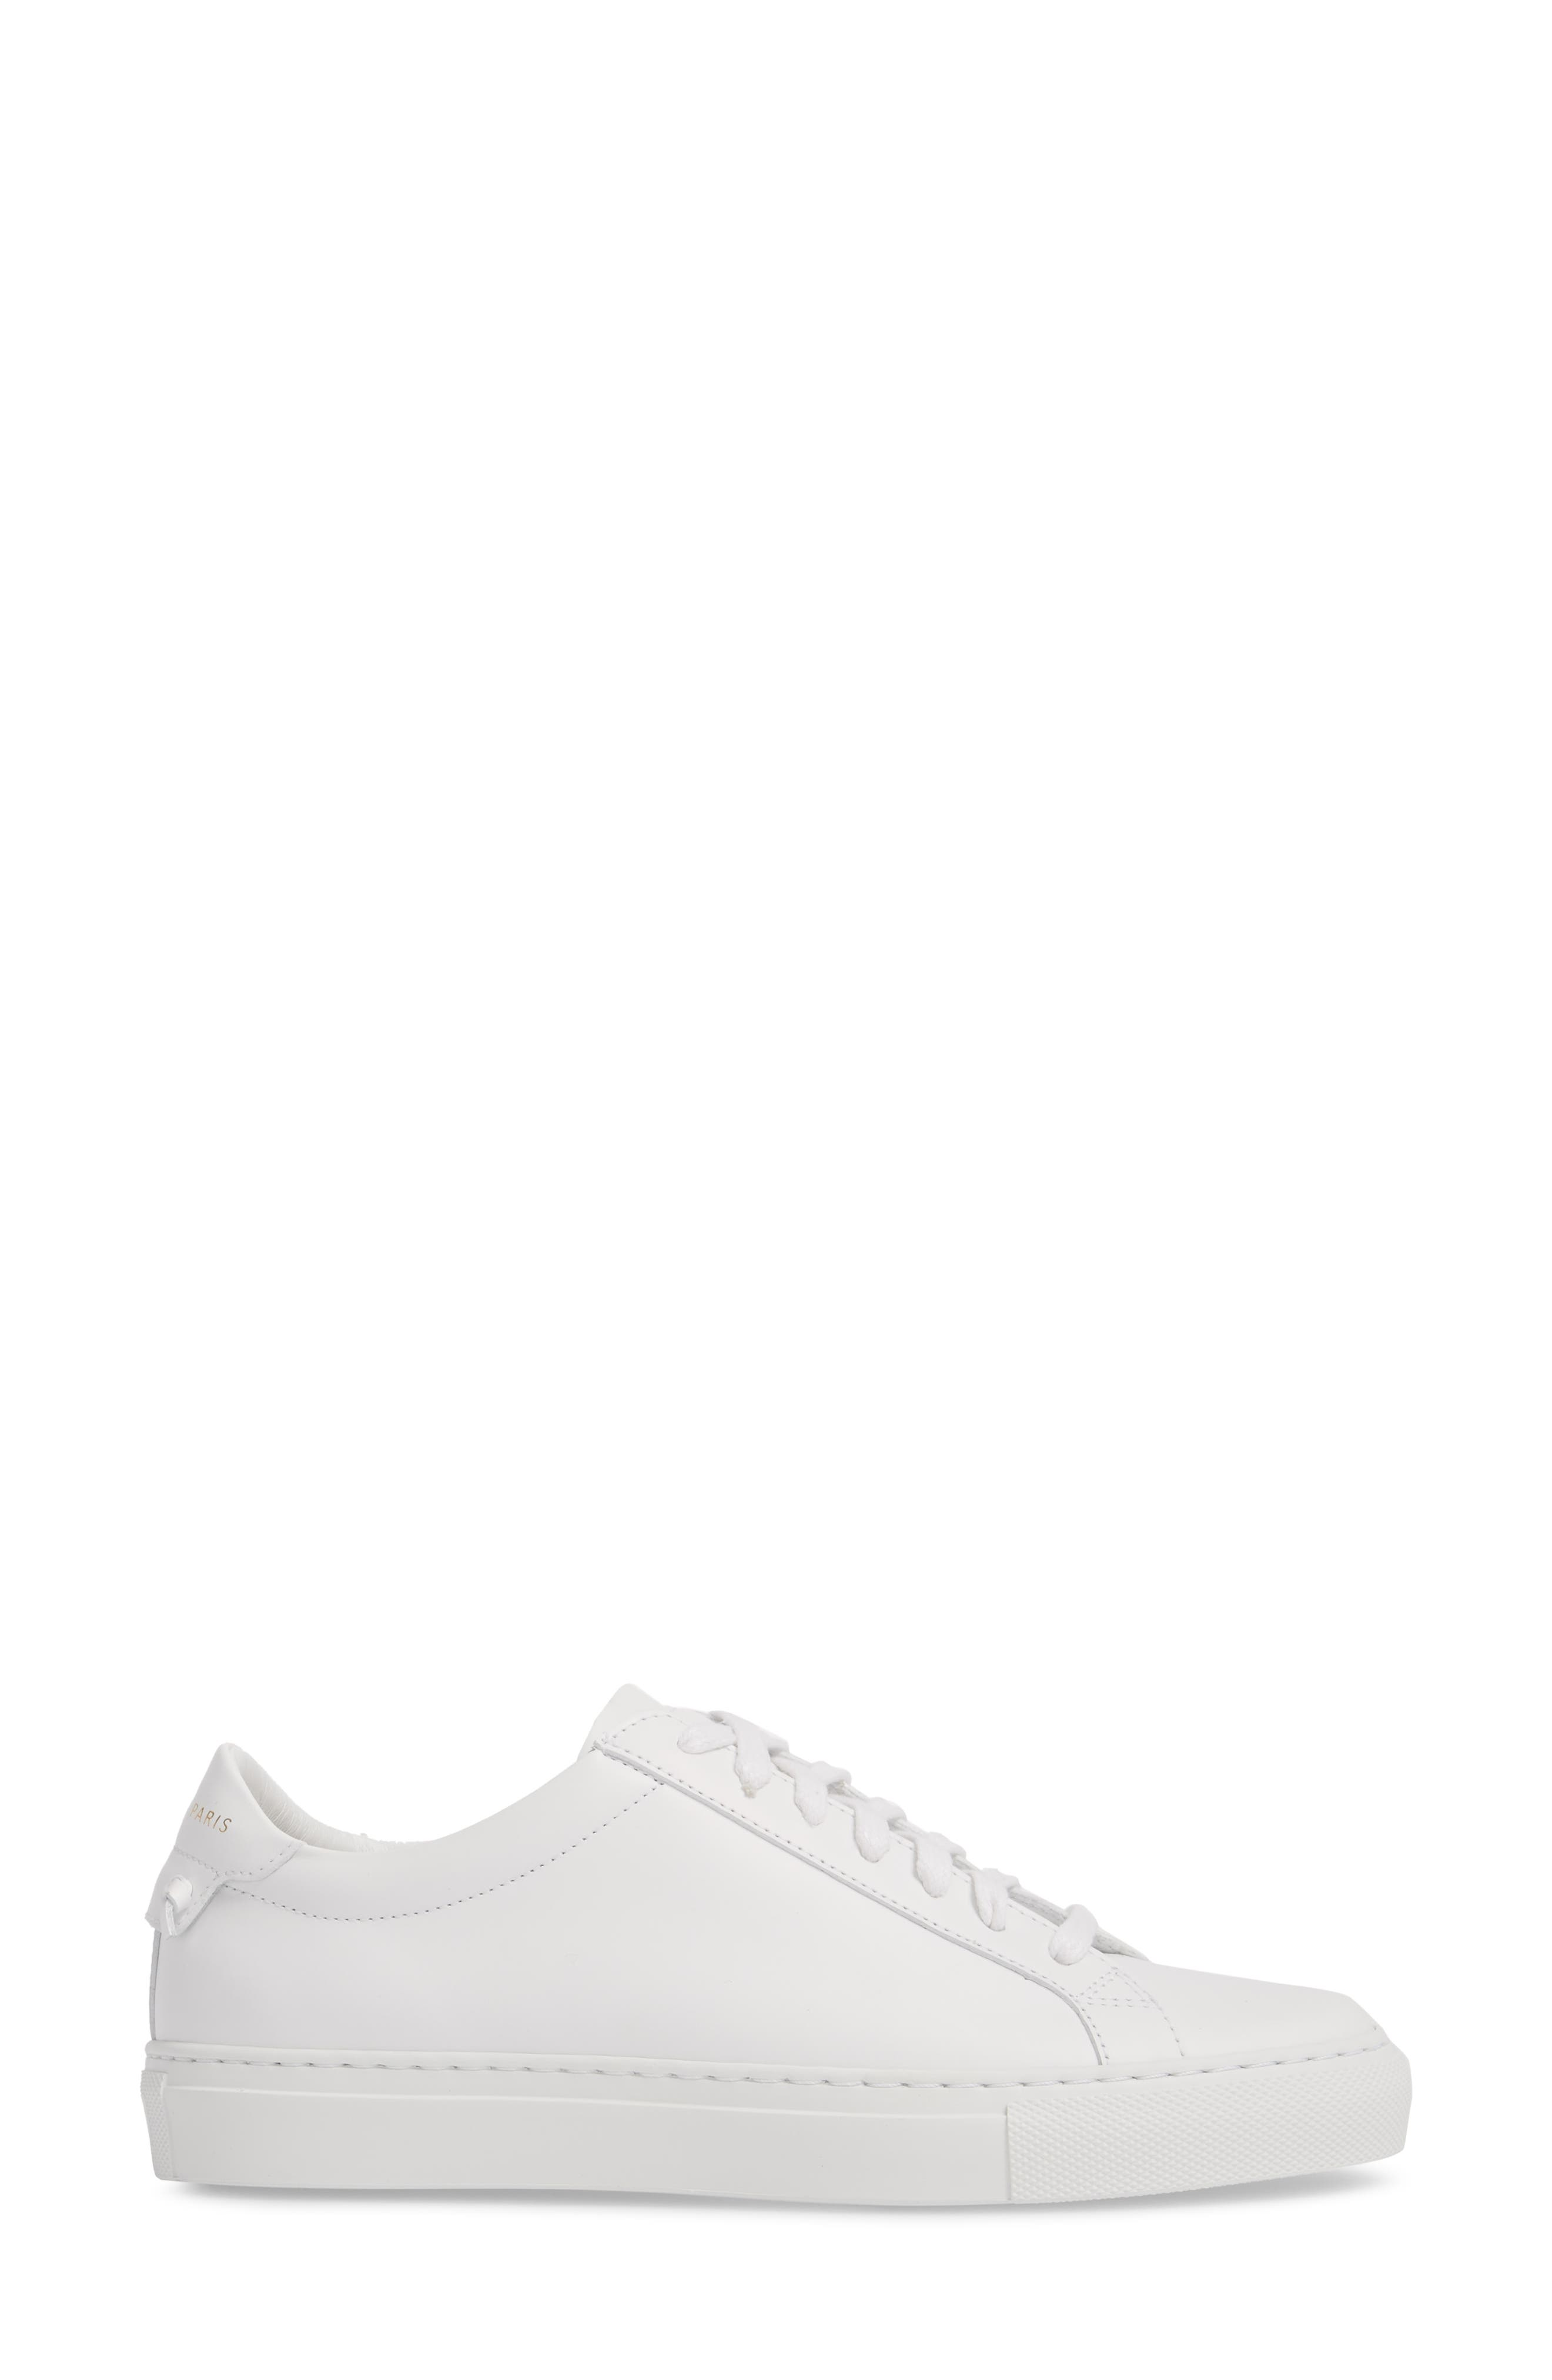 Alternate Image 3  - Givenchy Low Top Sneaker (Women)